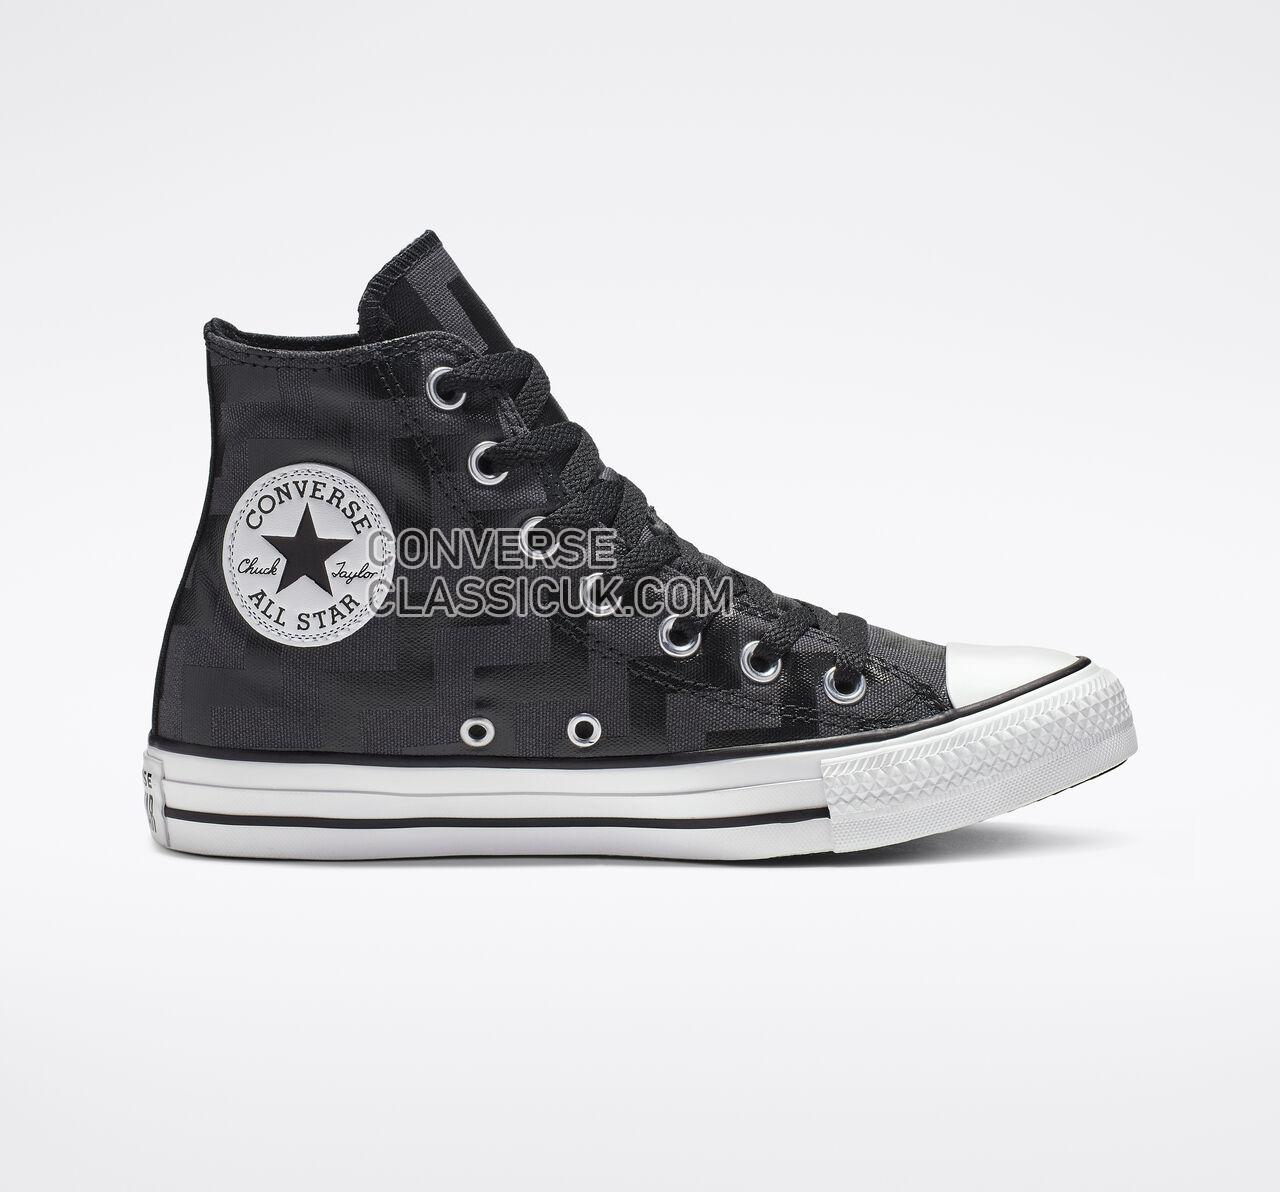 Converse Chuck Taylor All Star Glam Dunk High Top Womens 565212F Black/Almost Black/White Shoes